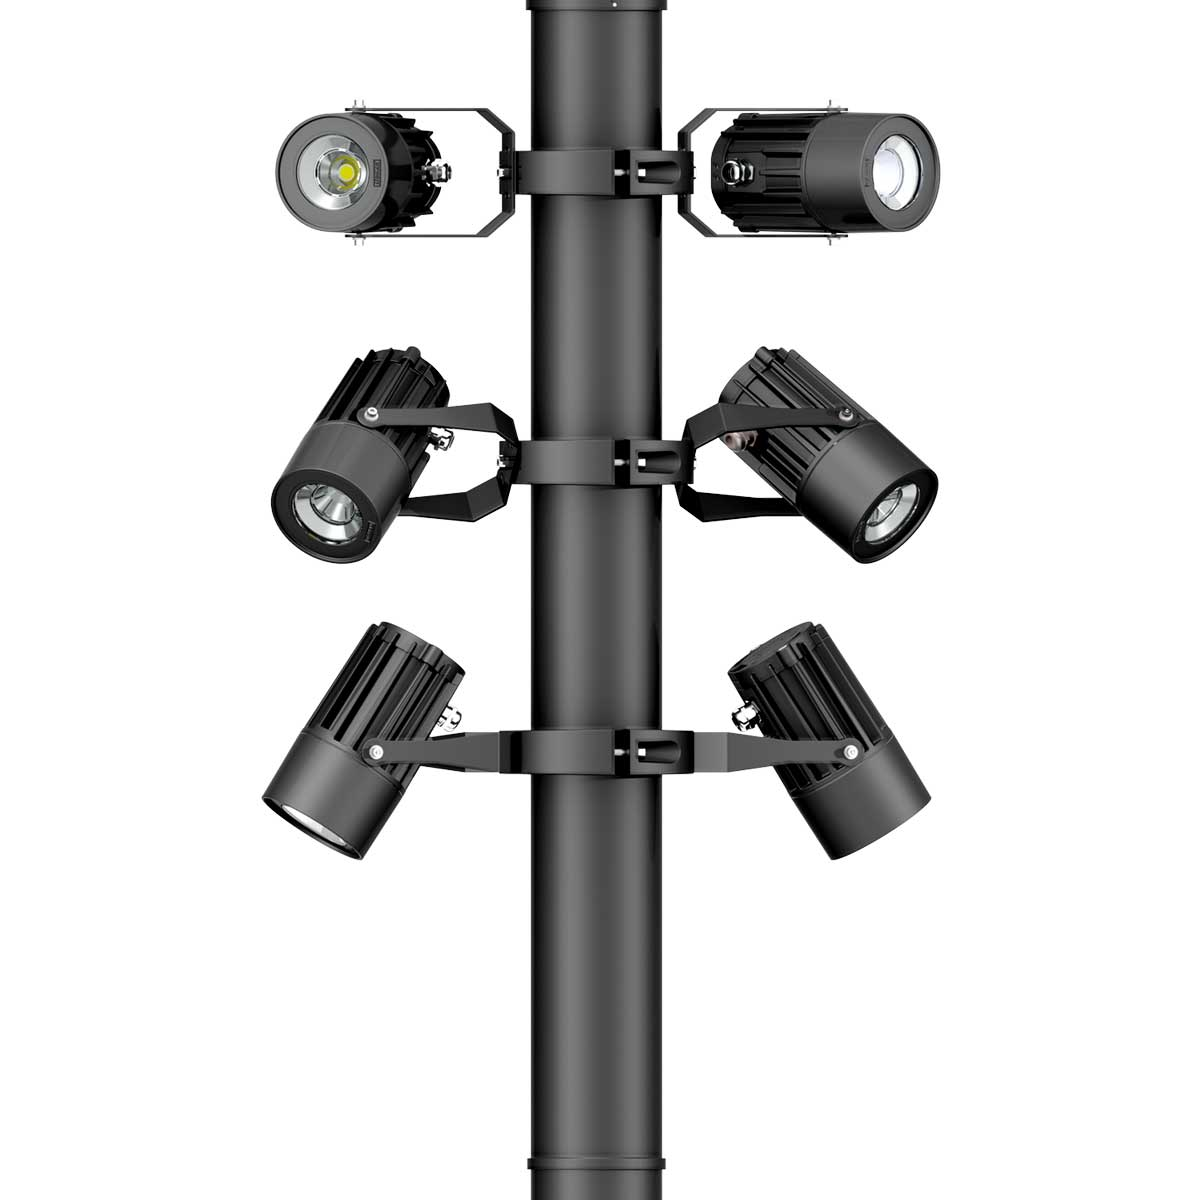 Odessa small double cluster light column prod 1200x1200